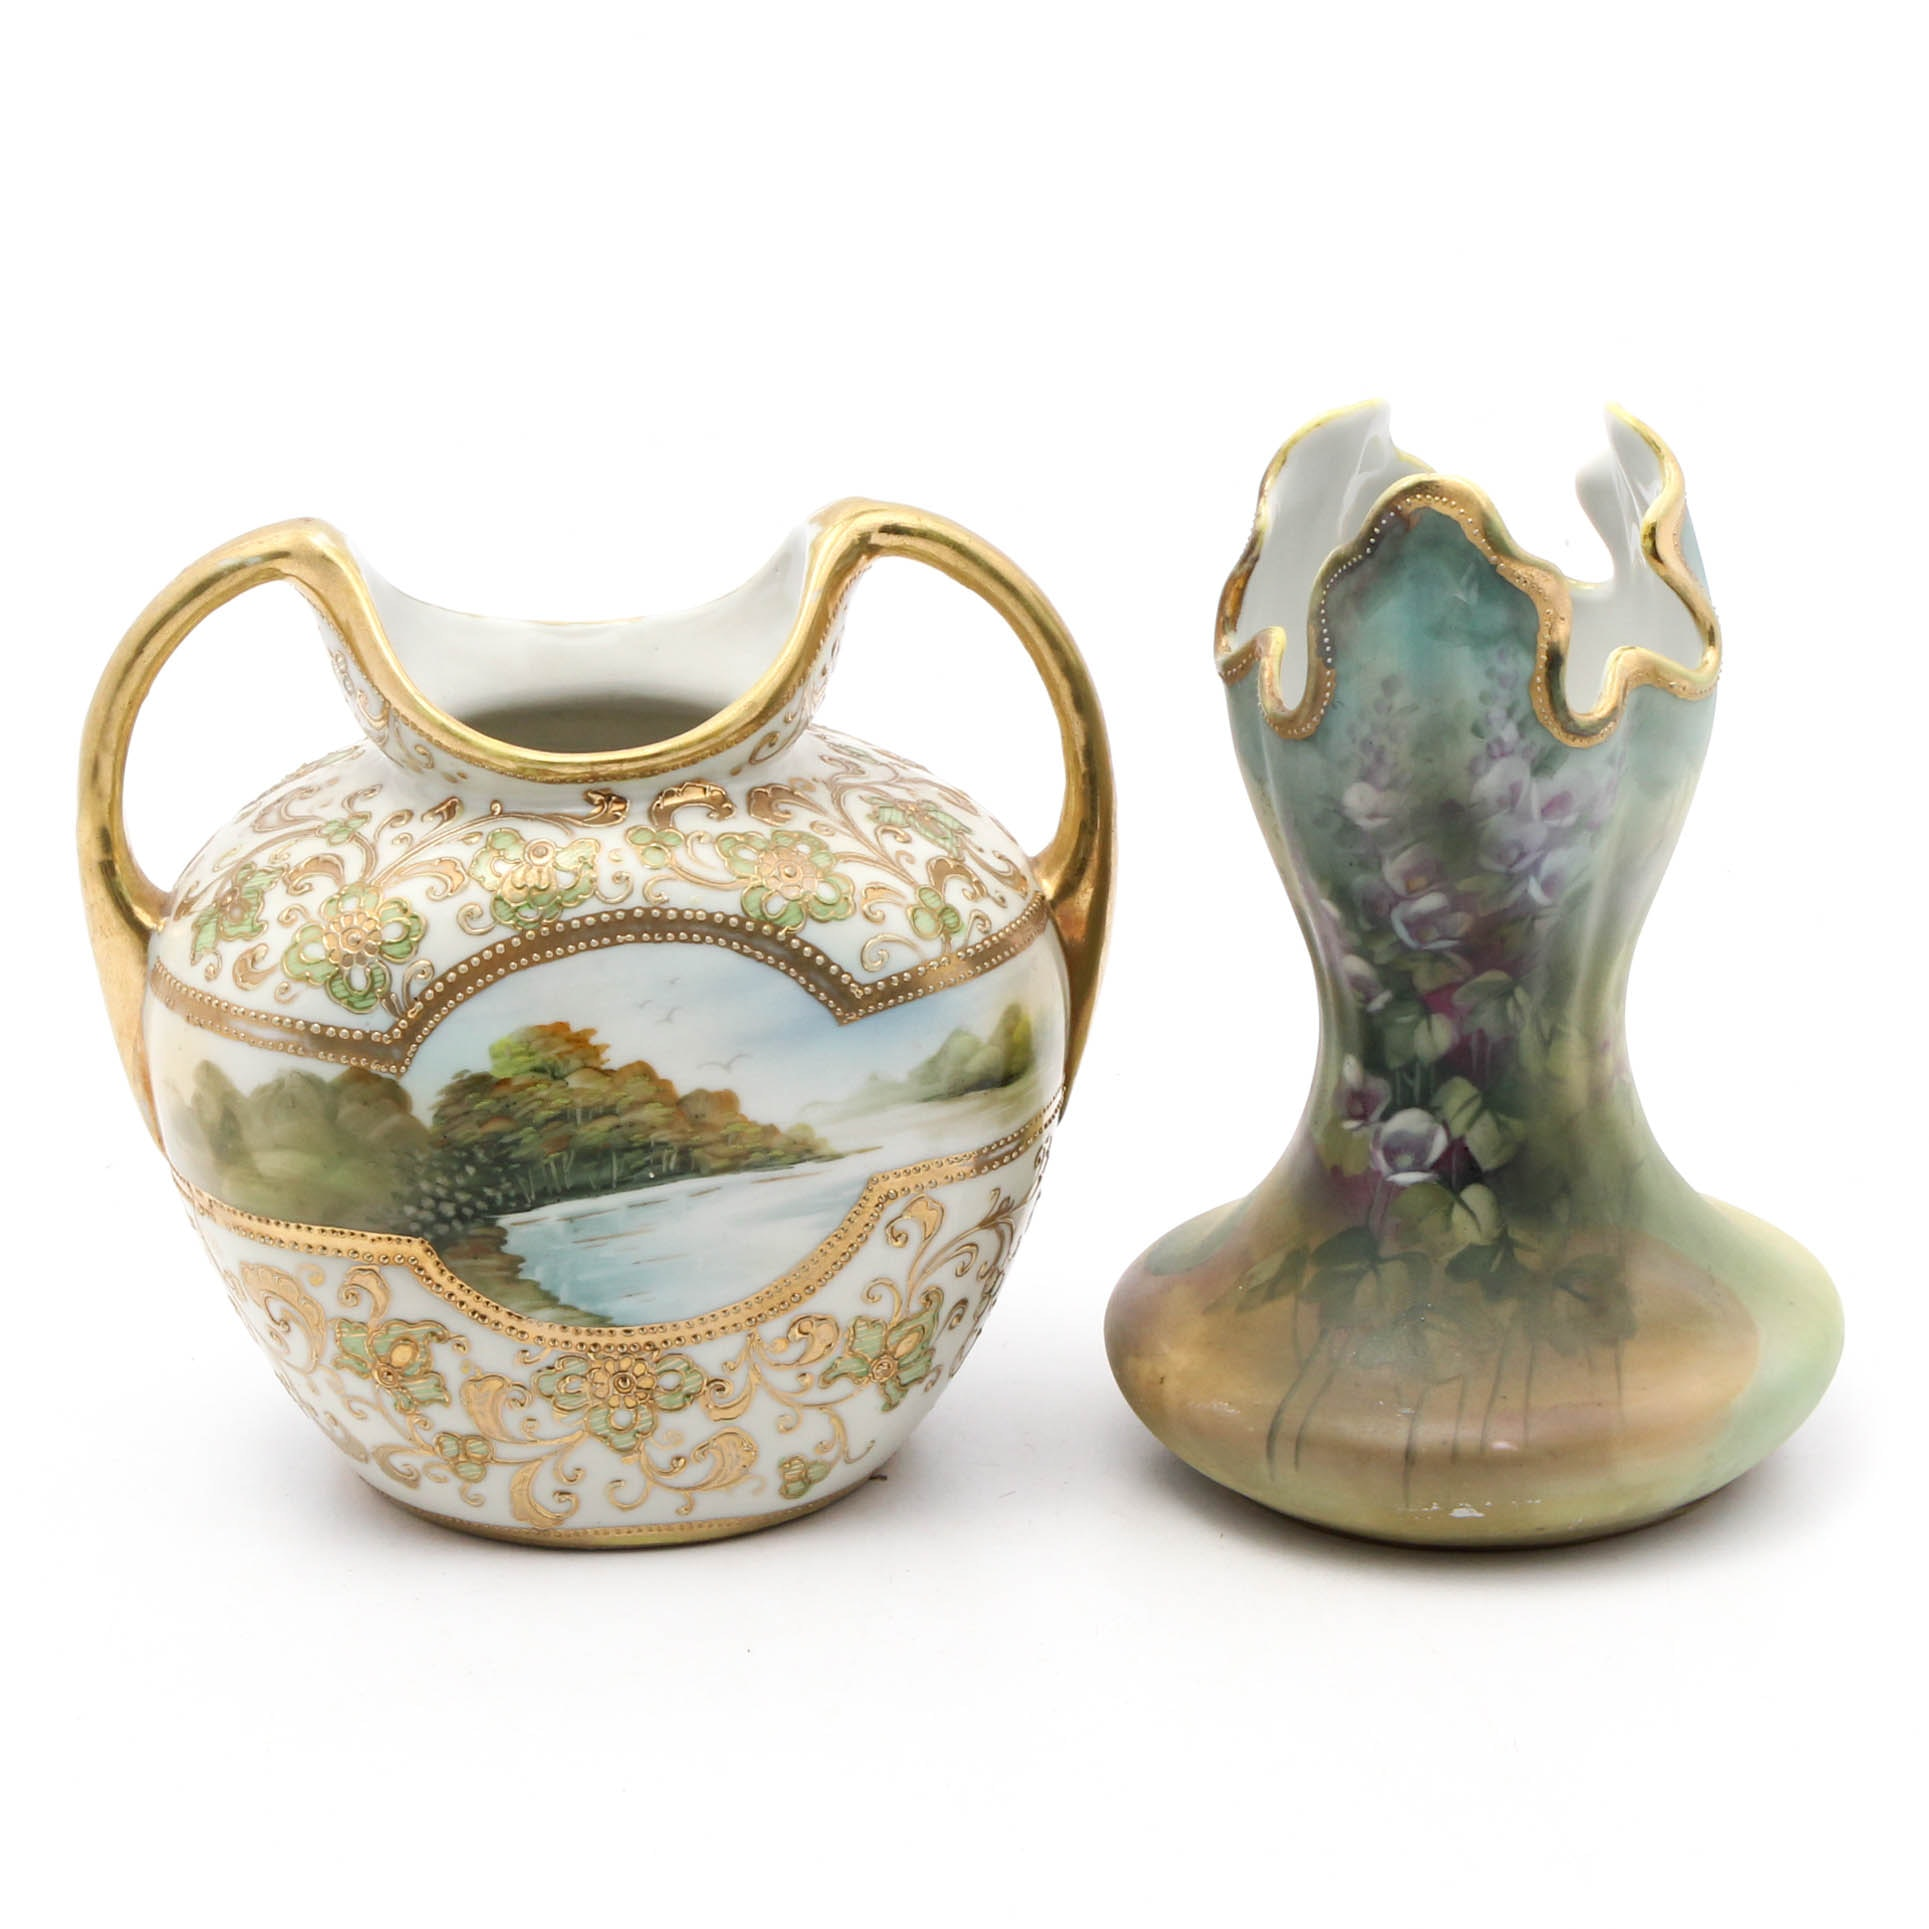 Two Vintage Nippon Hand-Painted Porcelain Vases